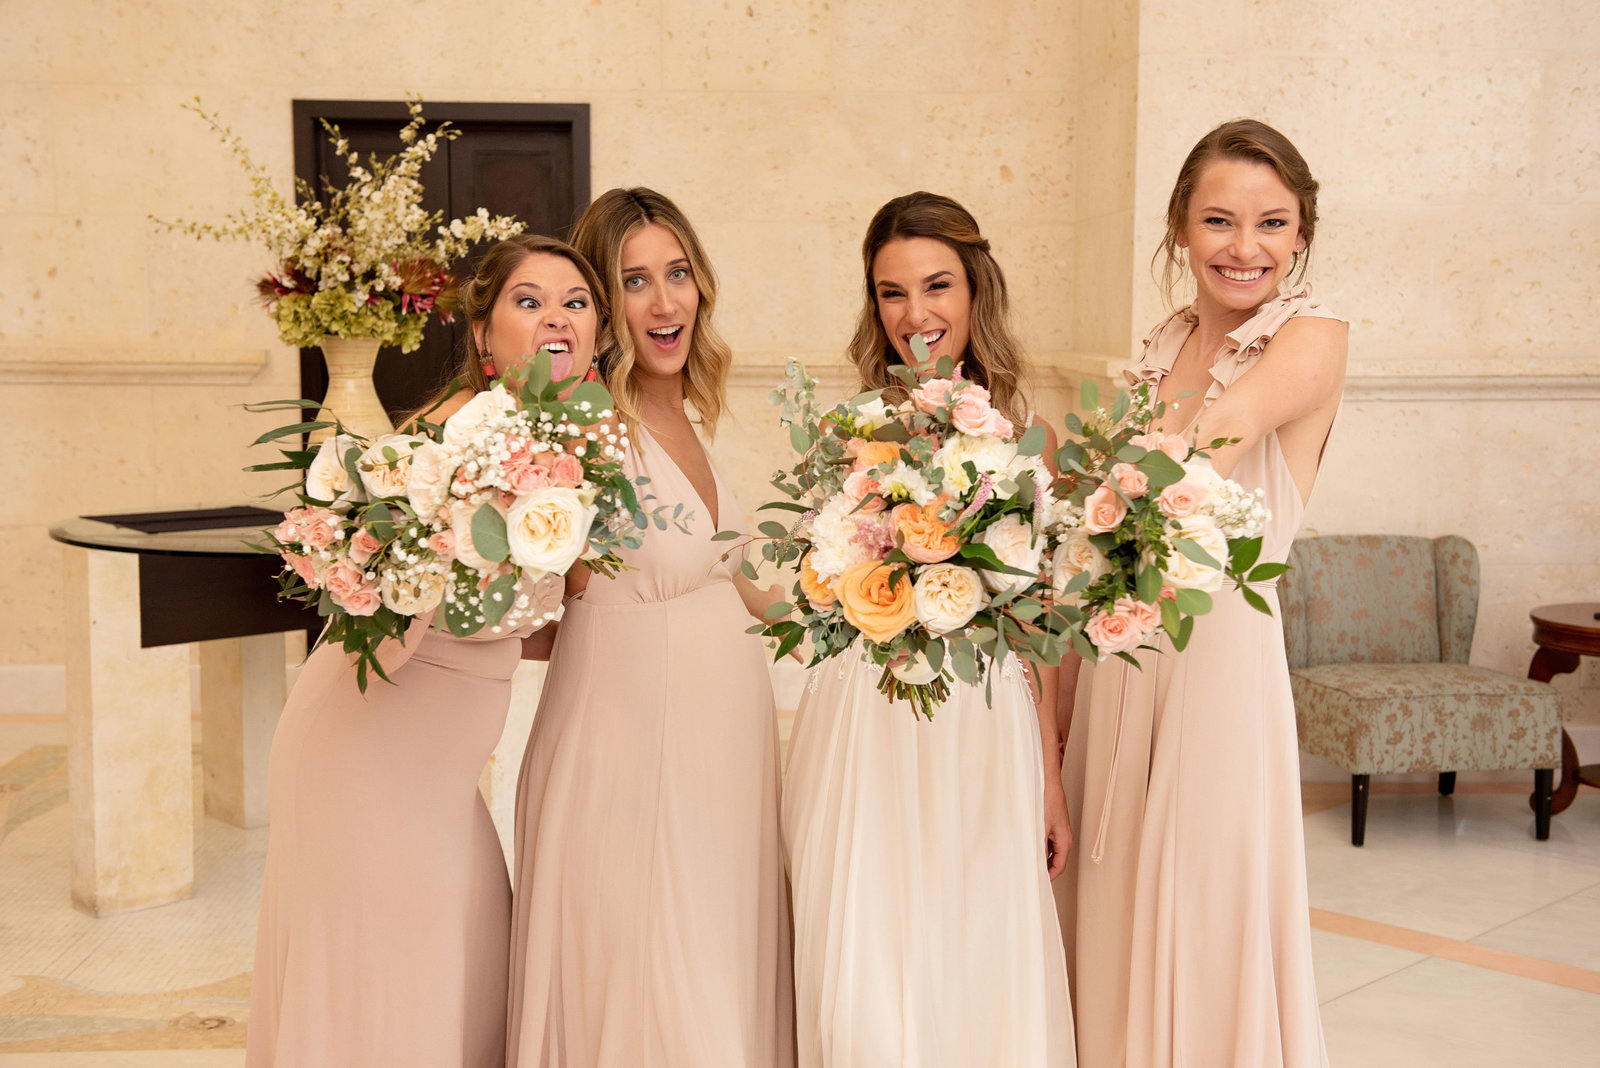 Bride and bridesmaids with bouquets at Atlantis Banquet and Events